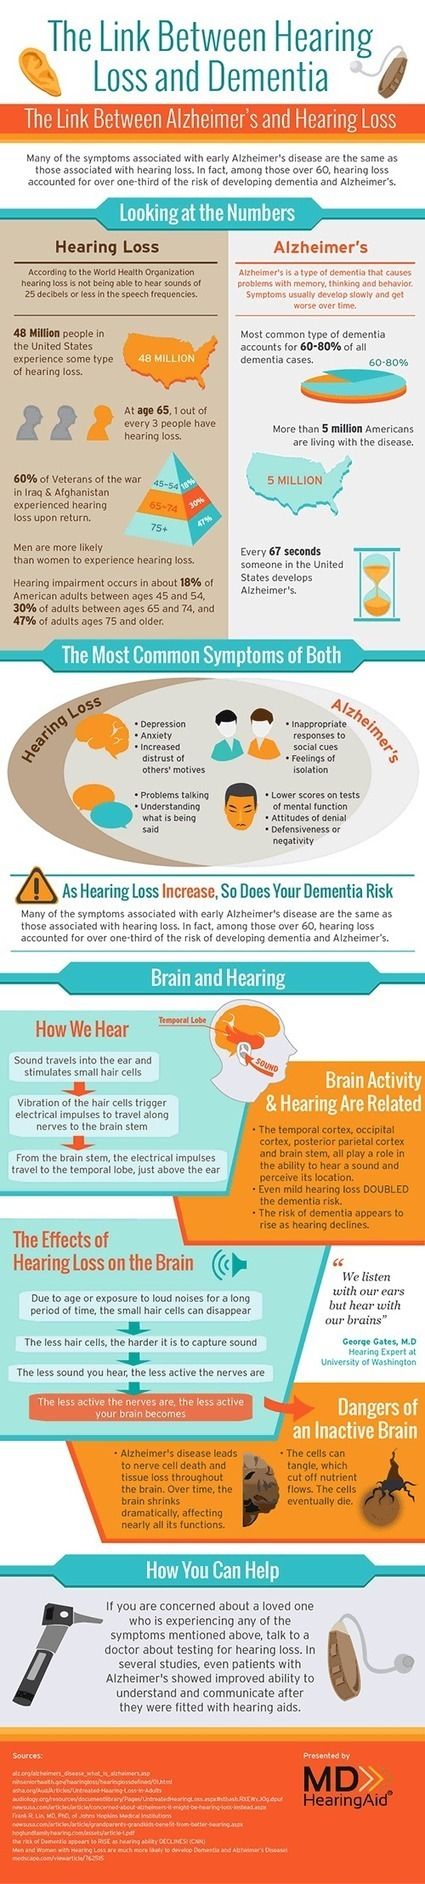 The Link Between Hearing Loss and Alzheimer's Disease | Hearing Everything | Scoop.it